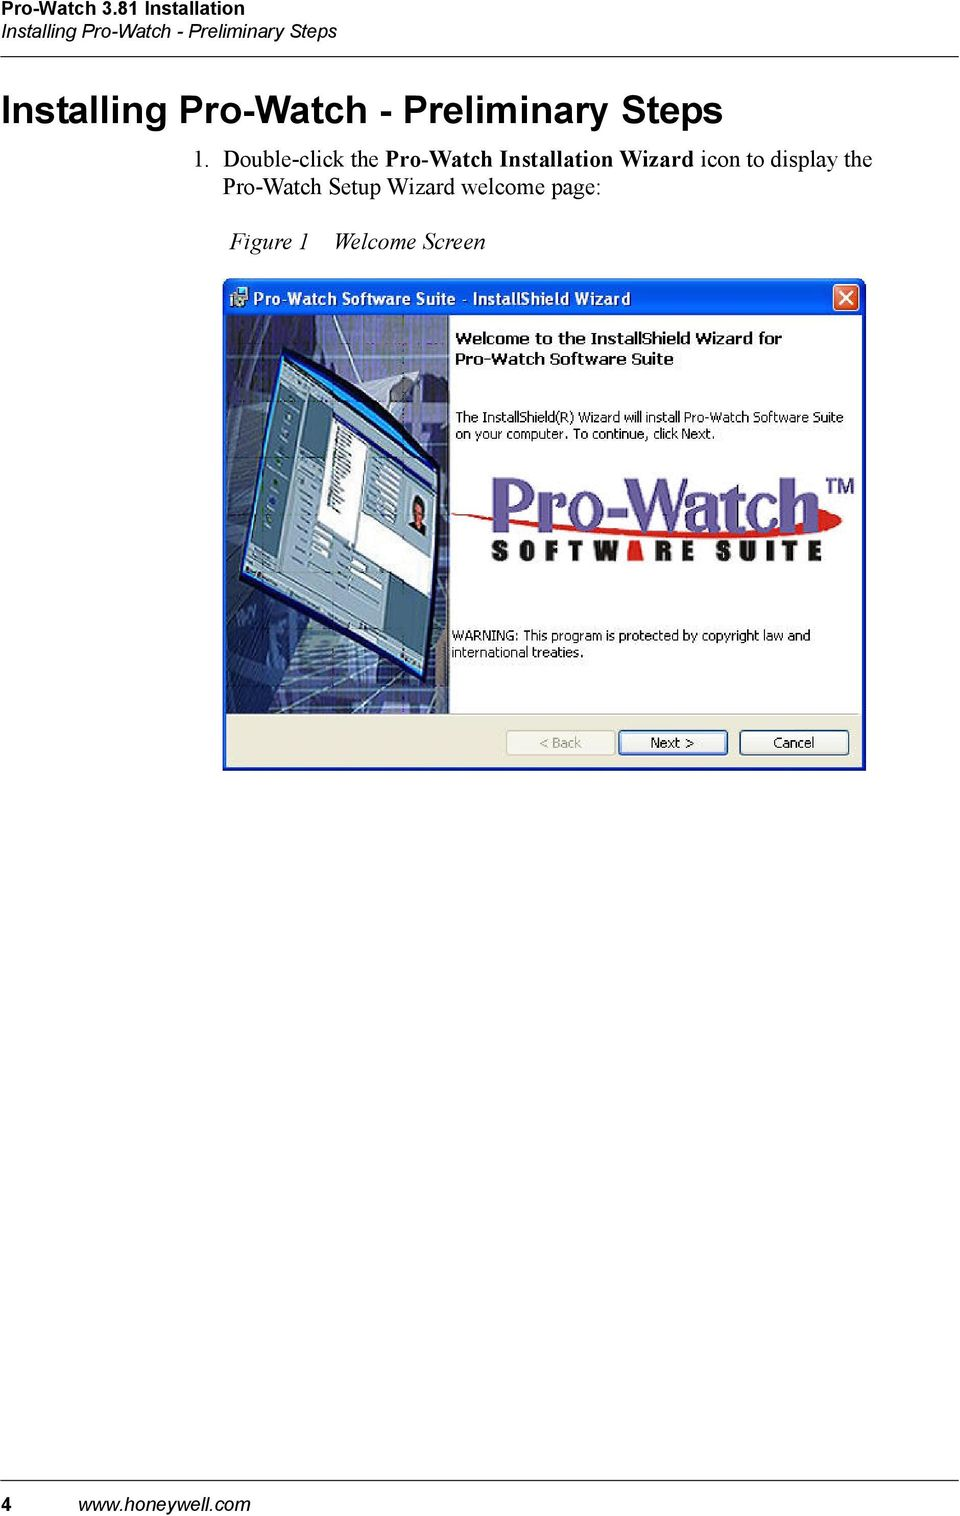 Double-click the Pro-Watch Installation Wizard icon to